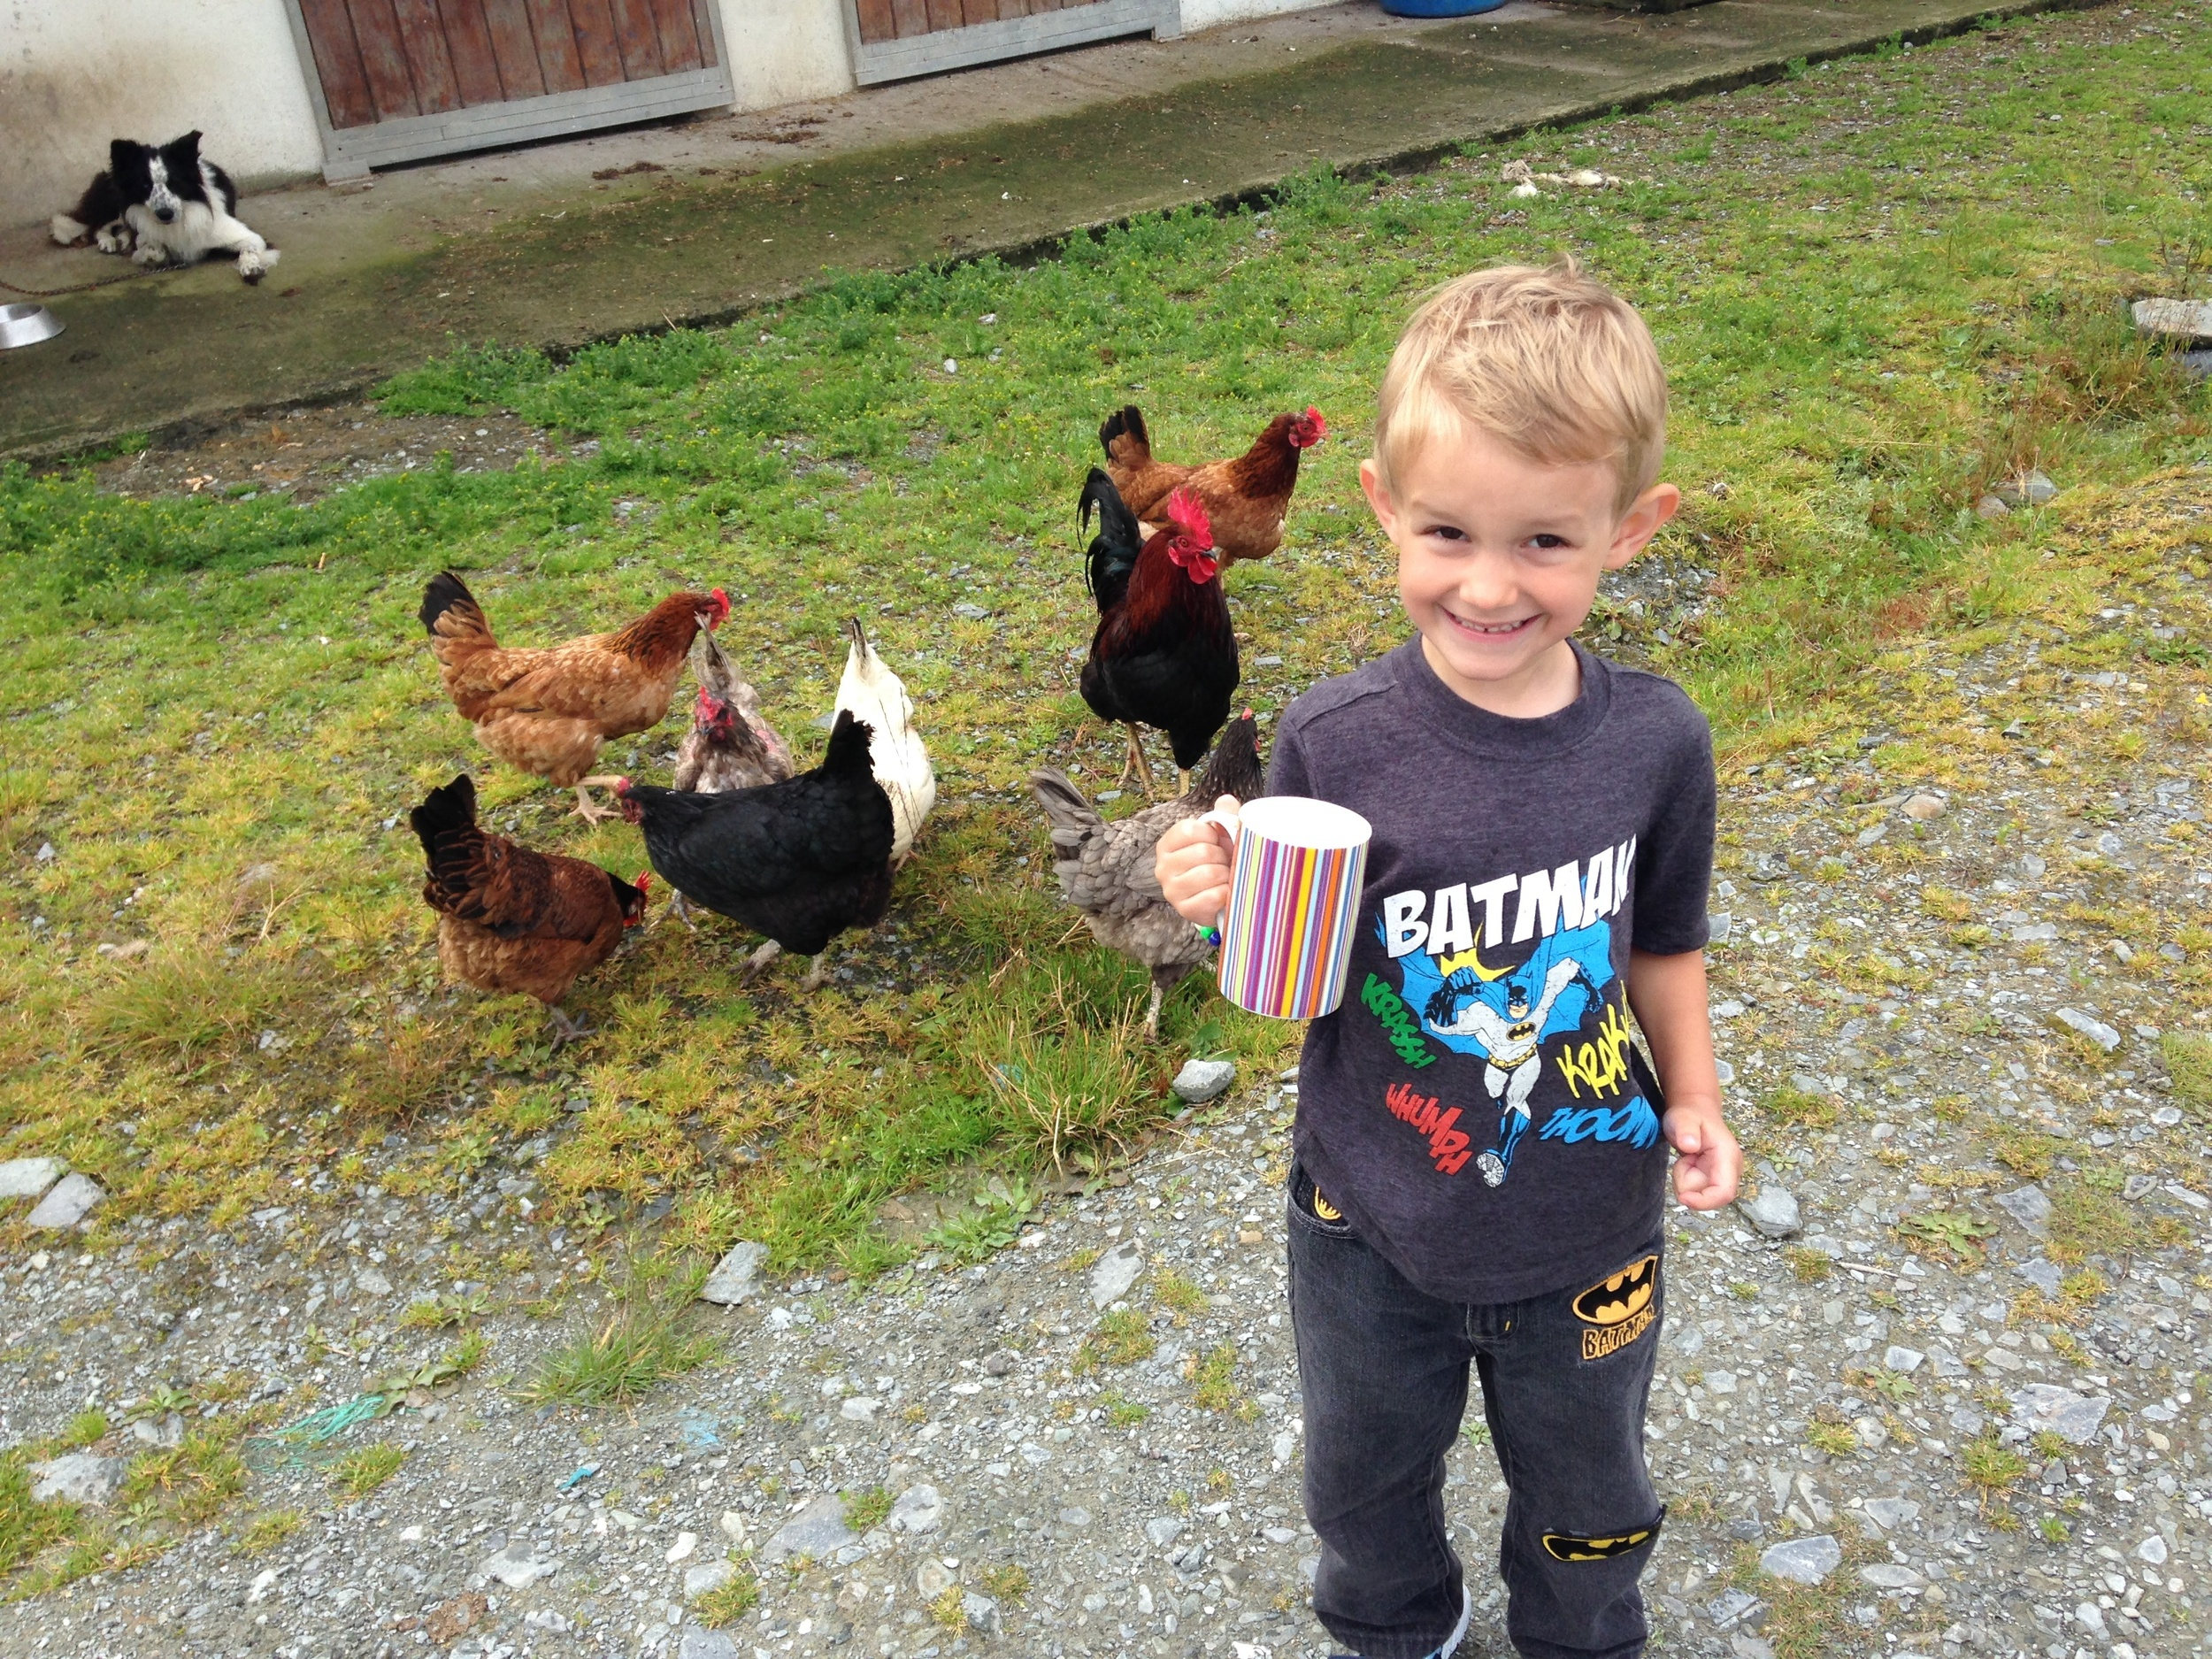 Kian about to feed the soaked up bread to the chickens